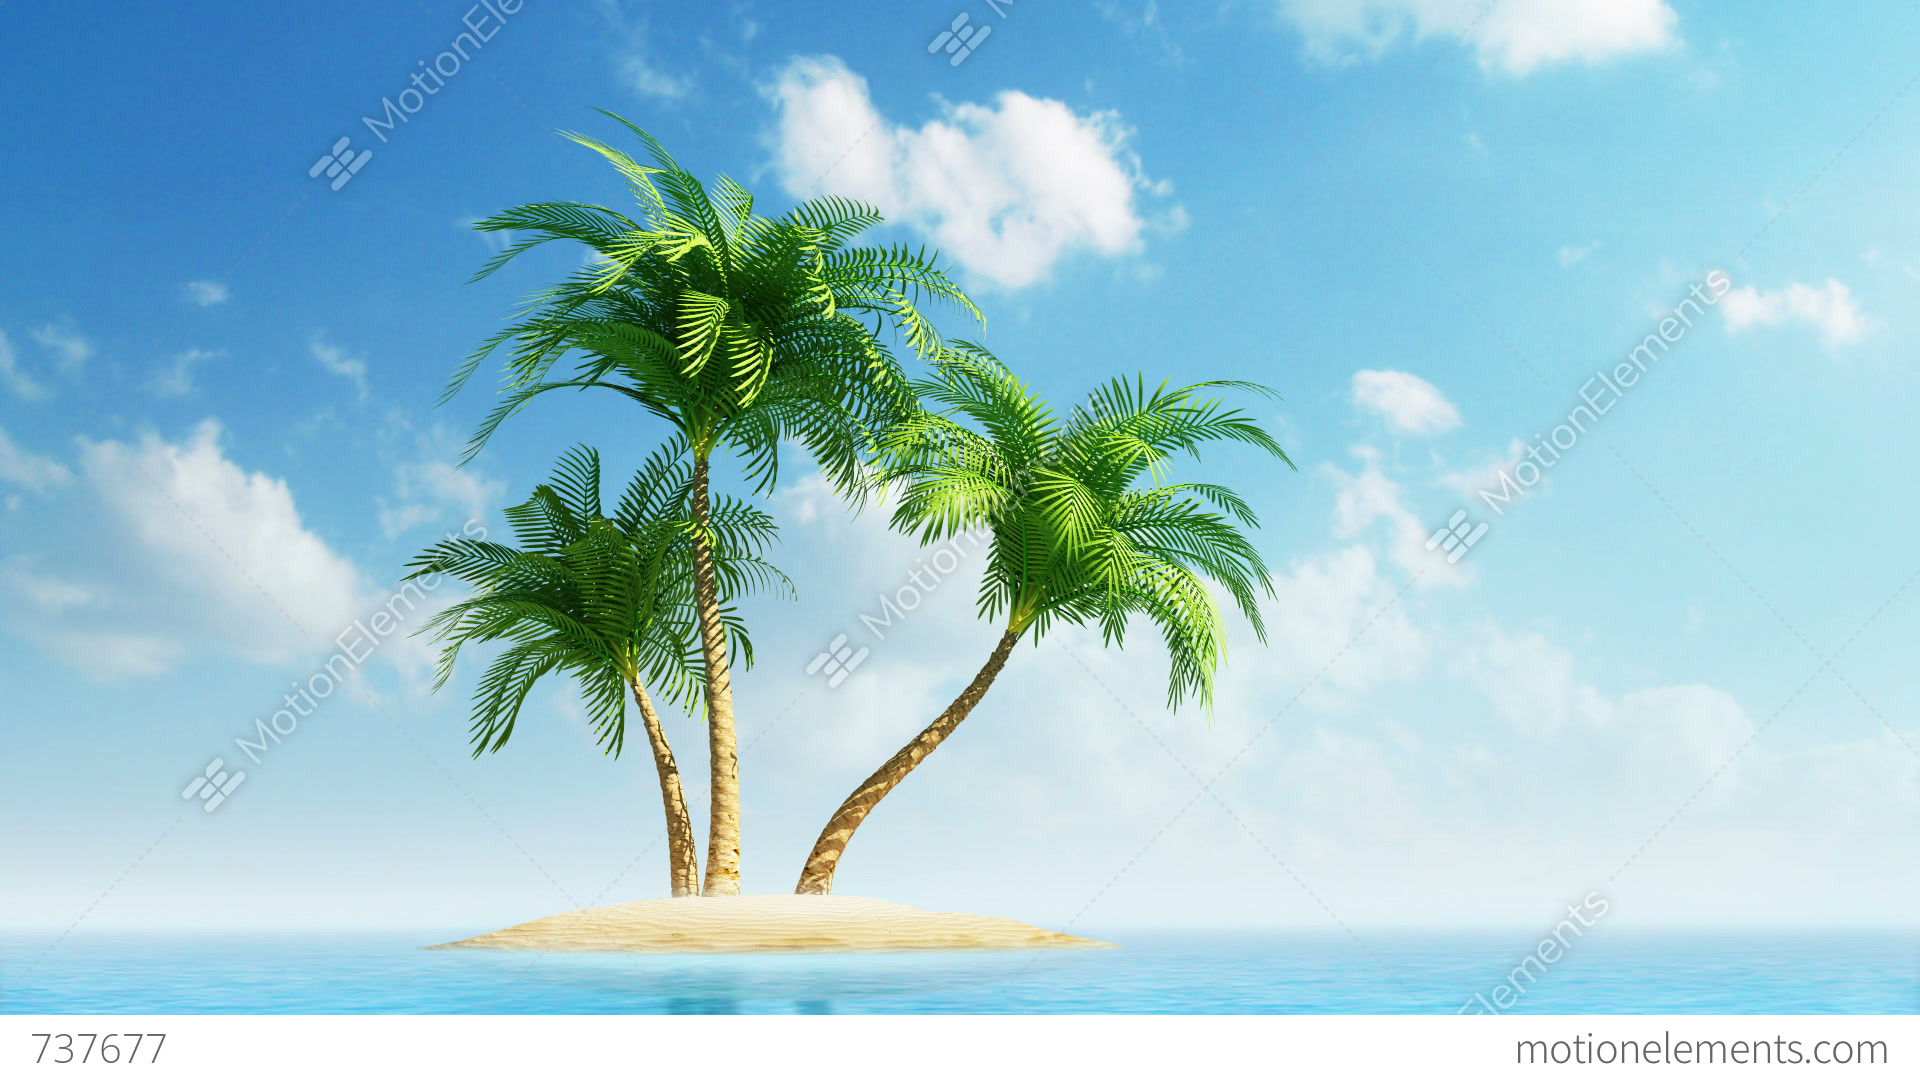 growing palm trees on island at sea stock animation 737677. Black Bedroom Furniture Sets. Home Design Ideas